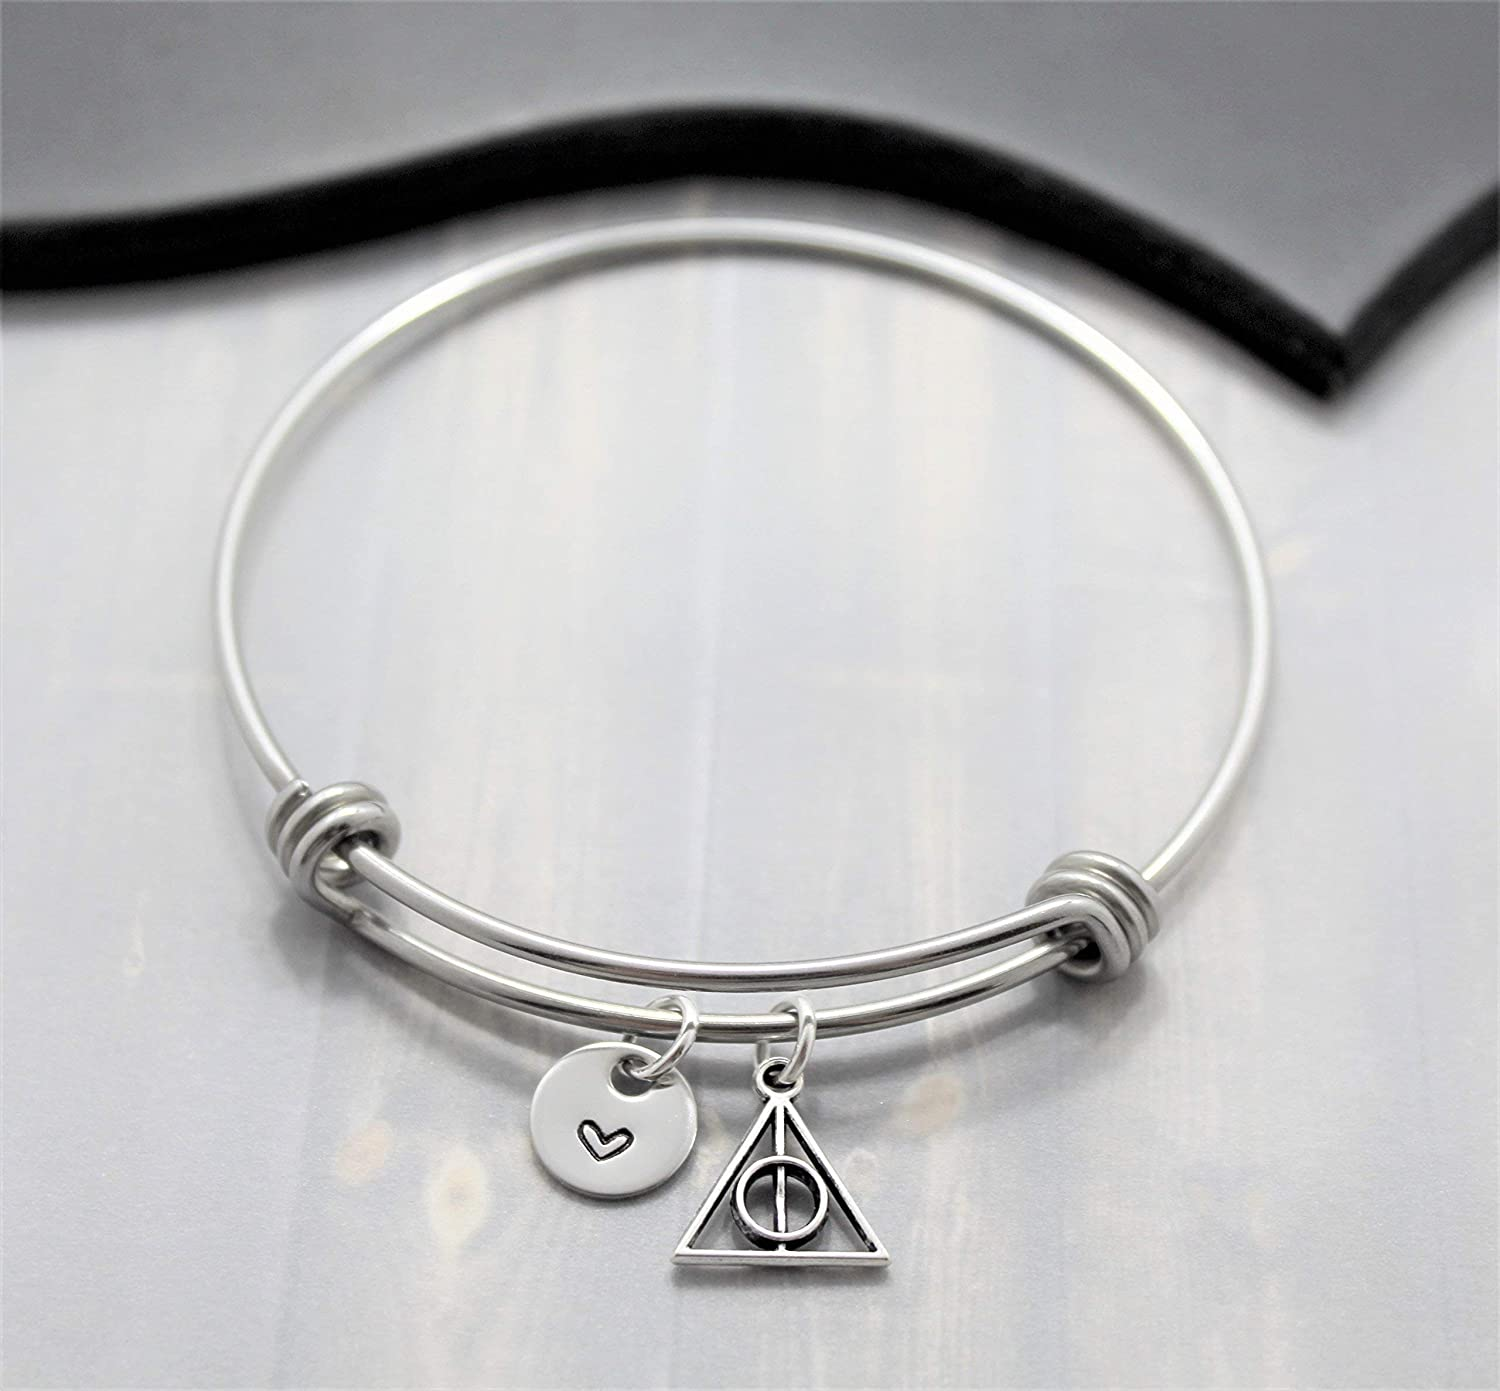 Deathly Hollows Bracelet - Deathly Hollows Jewelry - Harry Potter Fan - Adjustable Bangle - Fast Shipping